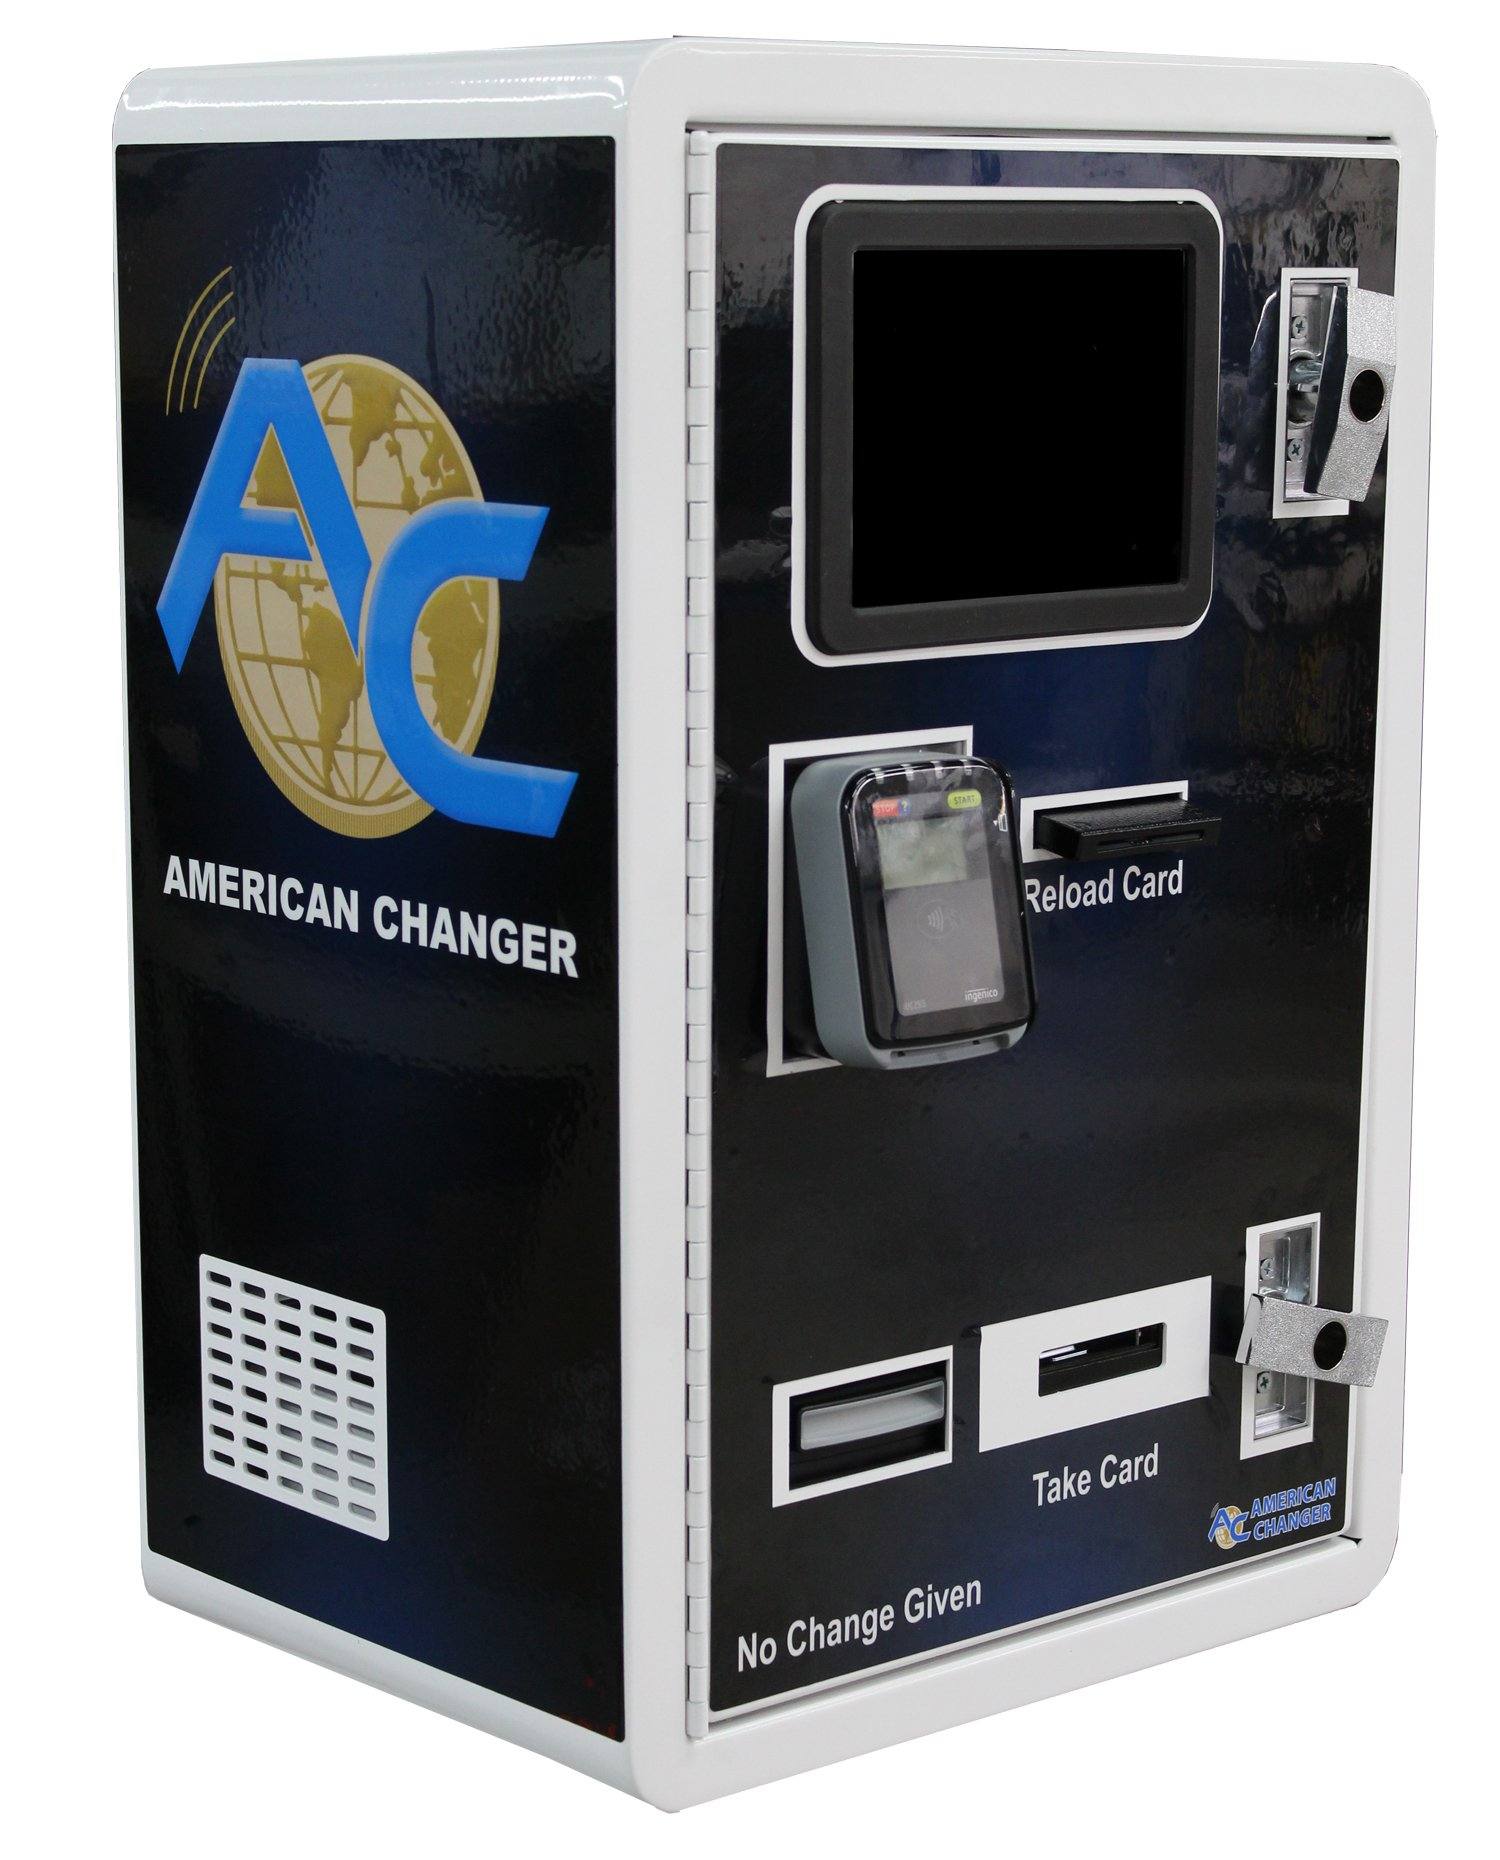 American Changer Announces a New Payment System